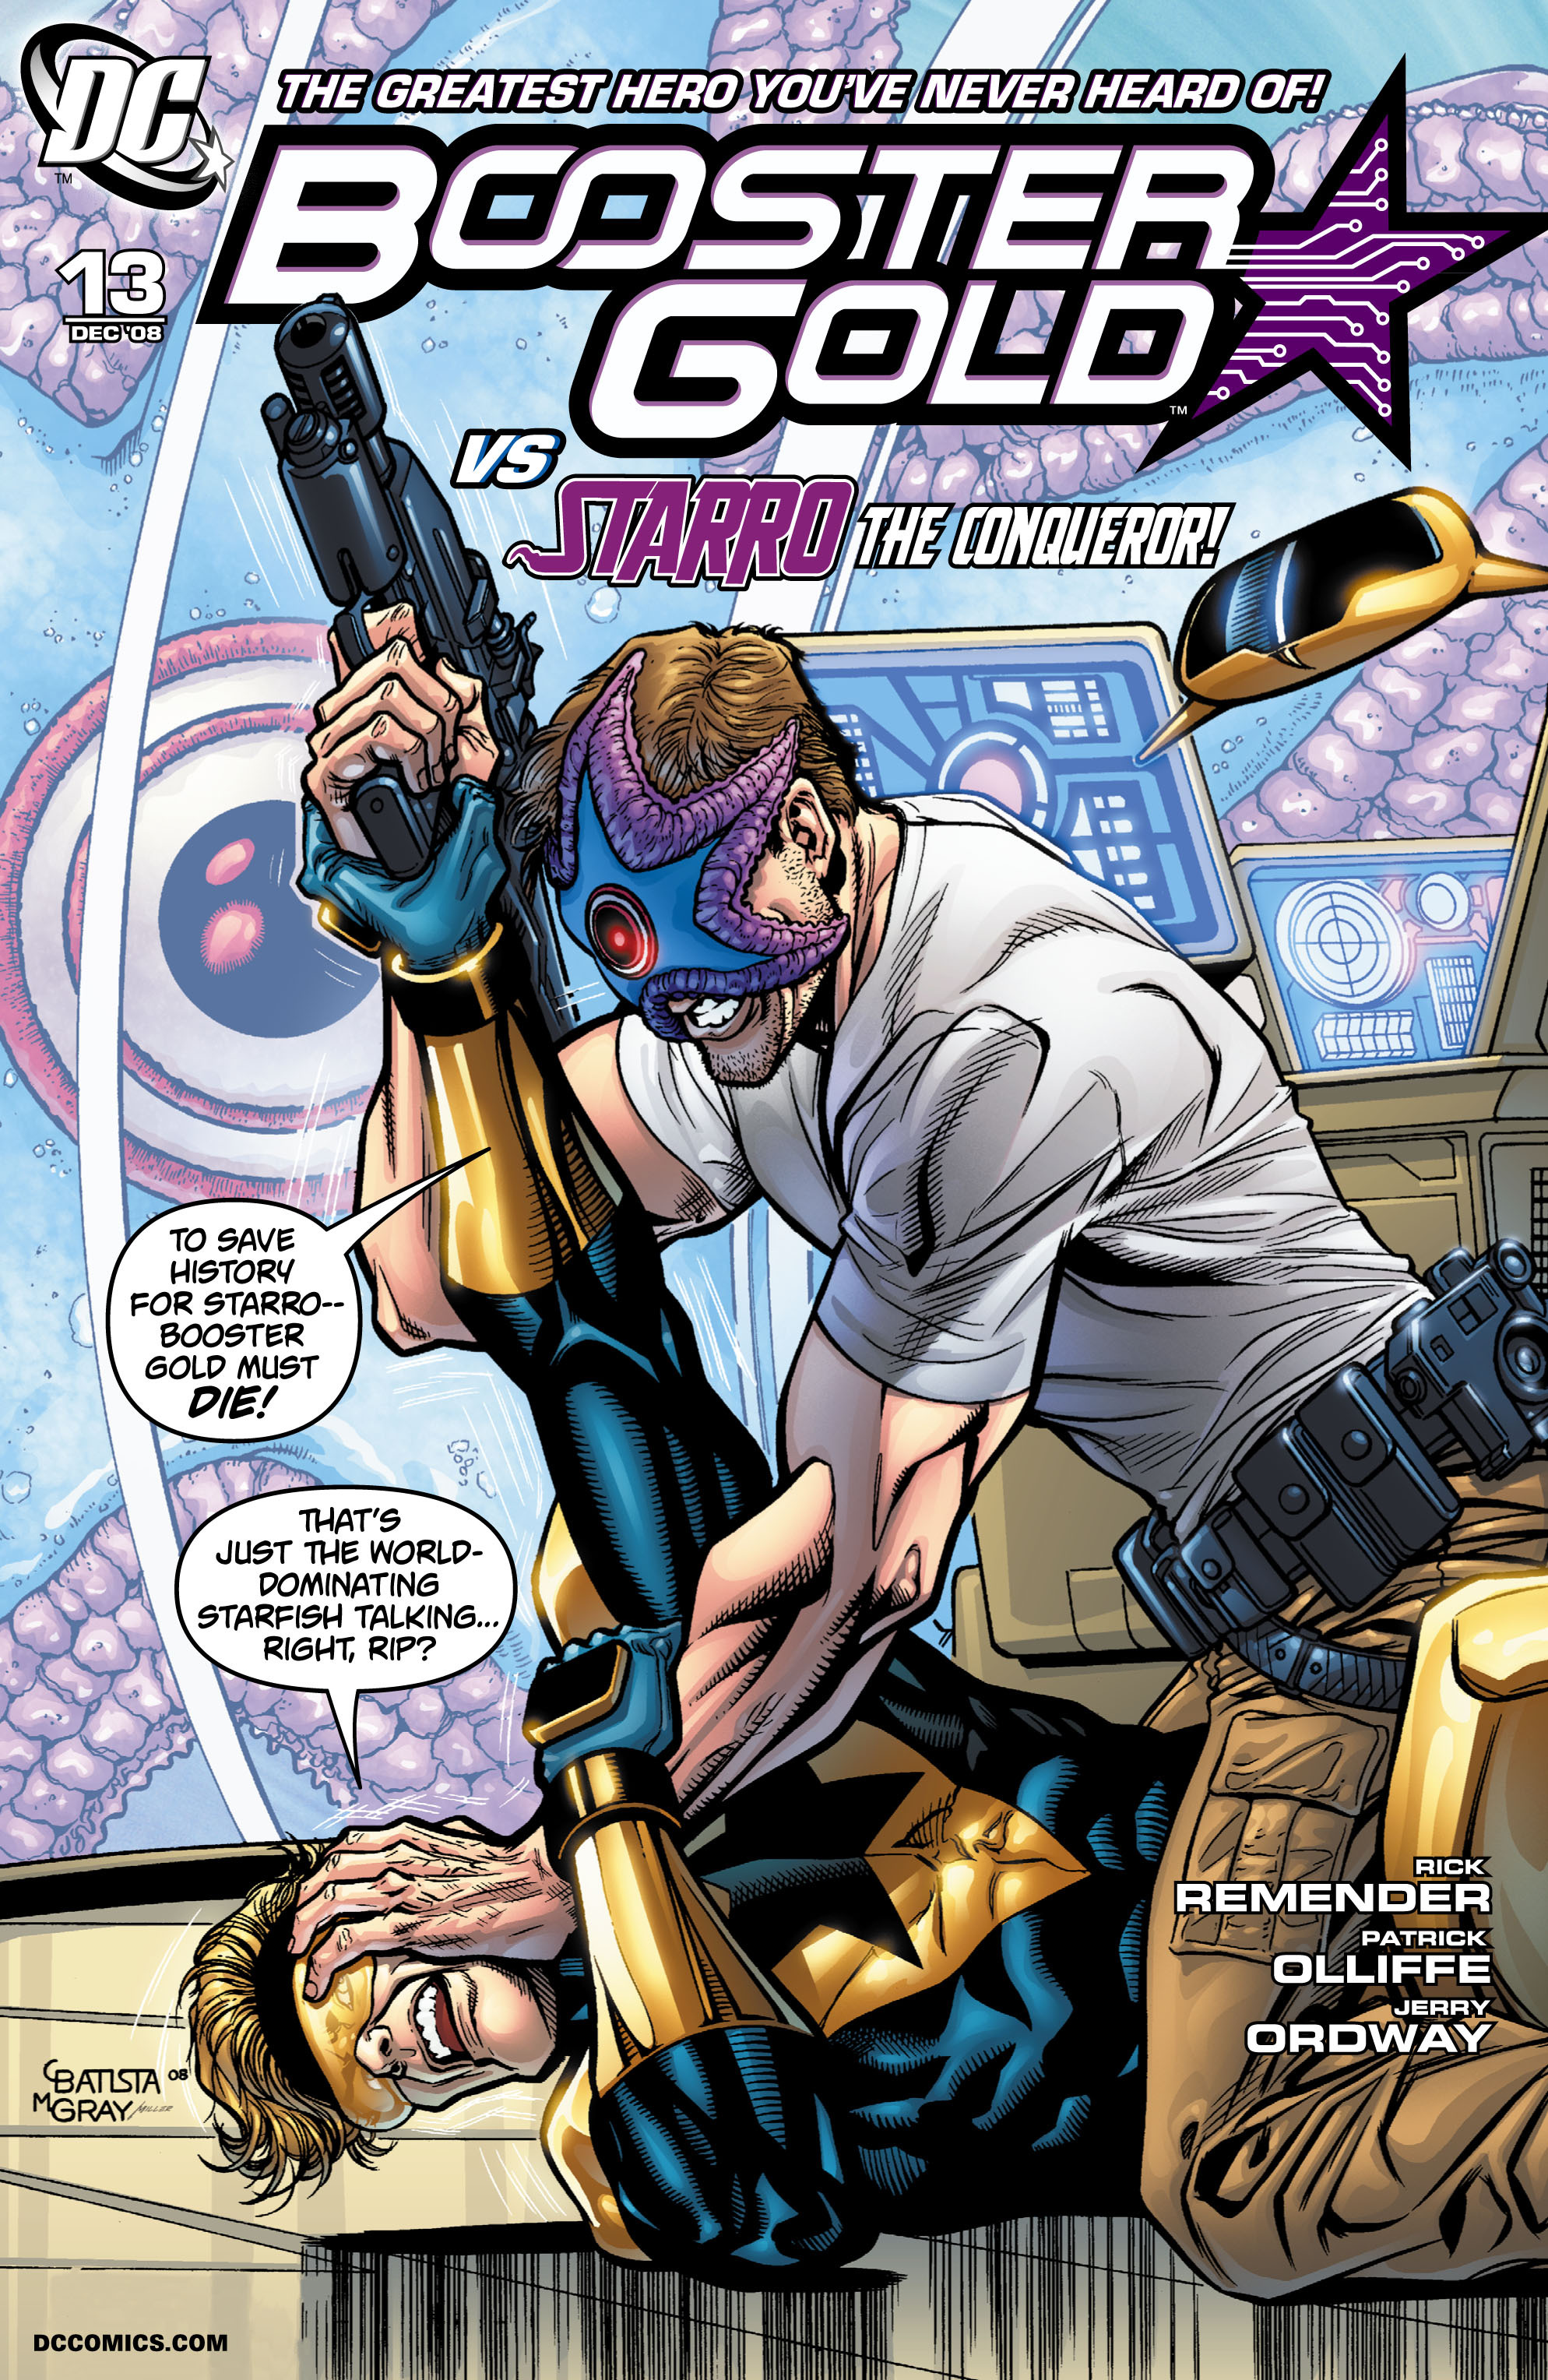 Booster Gold 2007 Issue 13